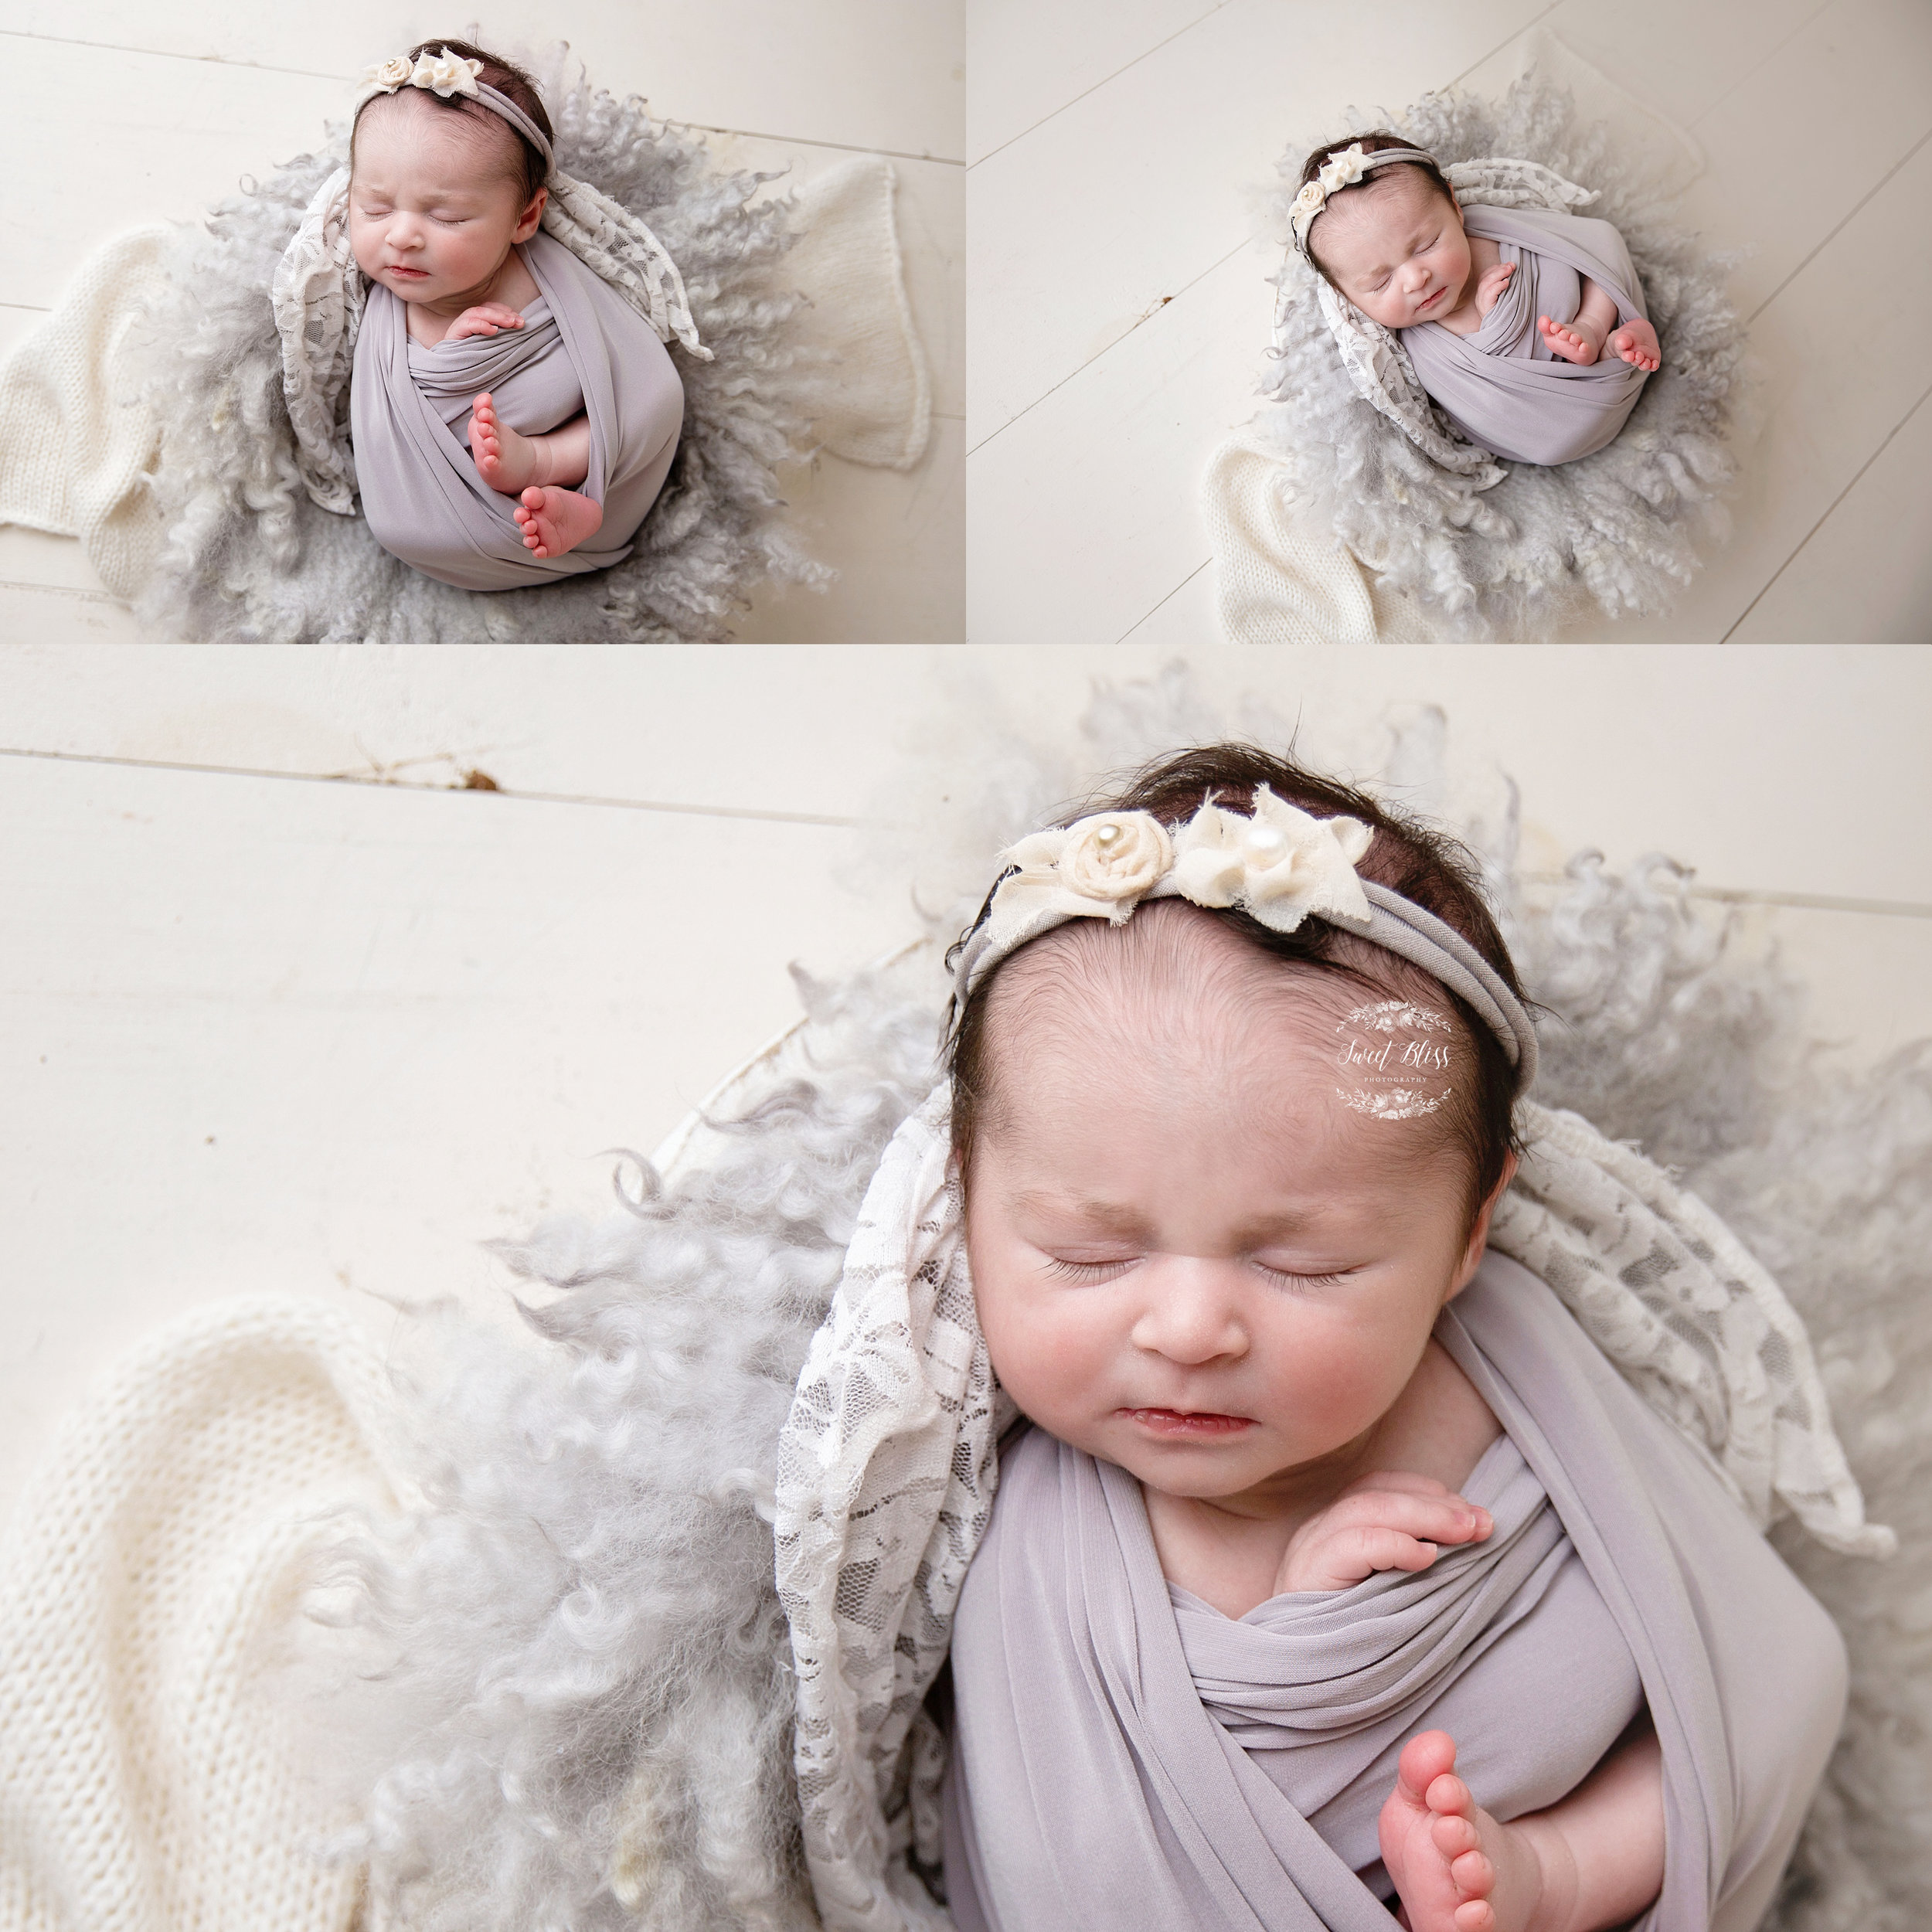 greybowl_sweetblissphoto_newborn1.jpg